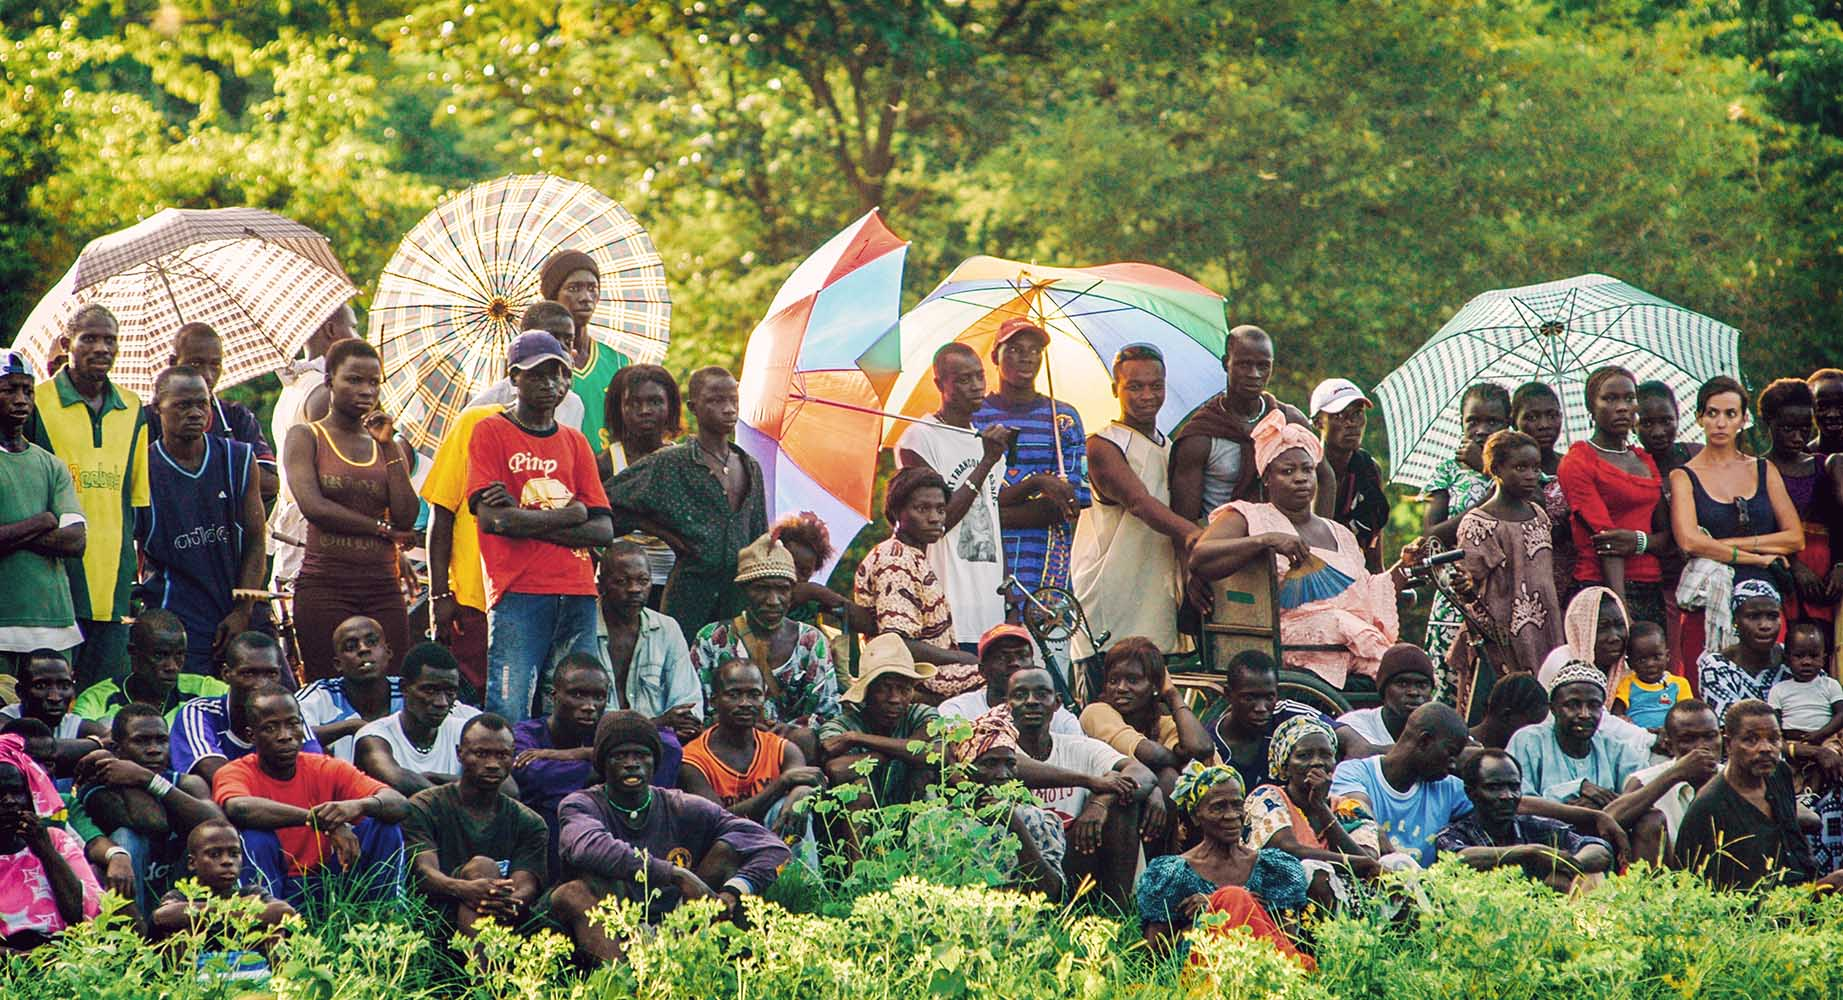 SENEGAL - SEPTEMBER 19: Spectators watching the traditional stru